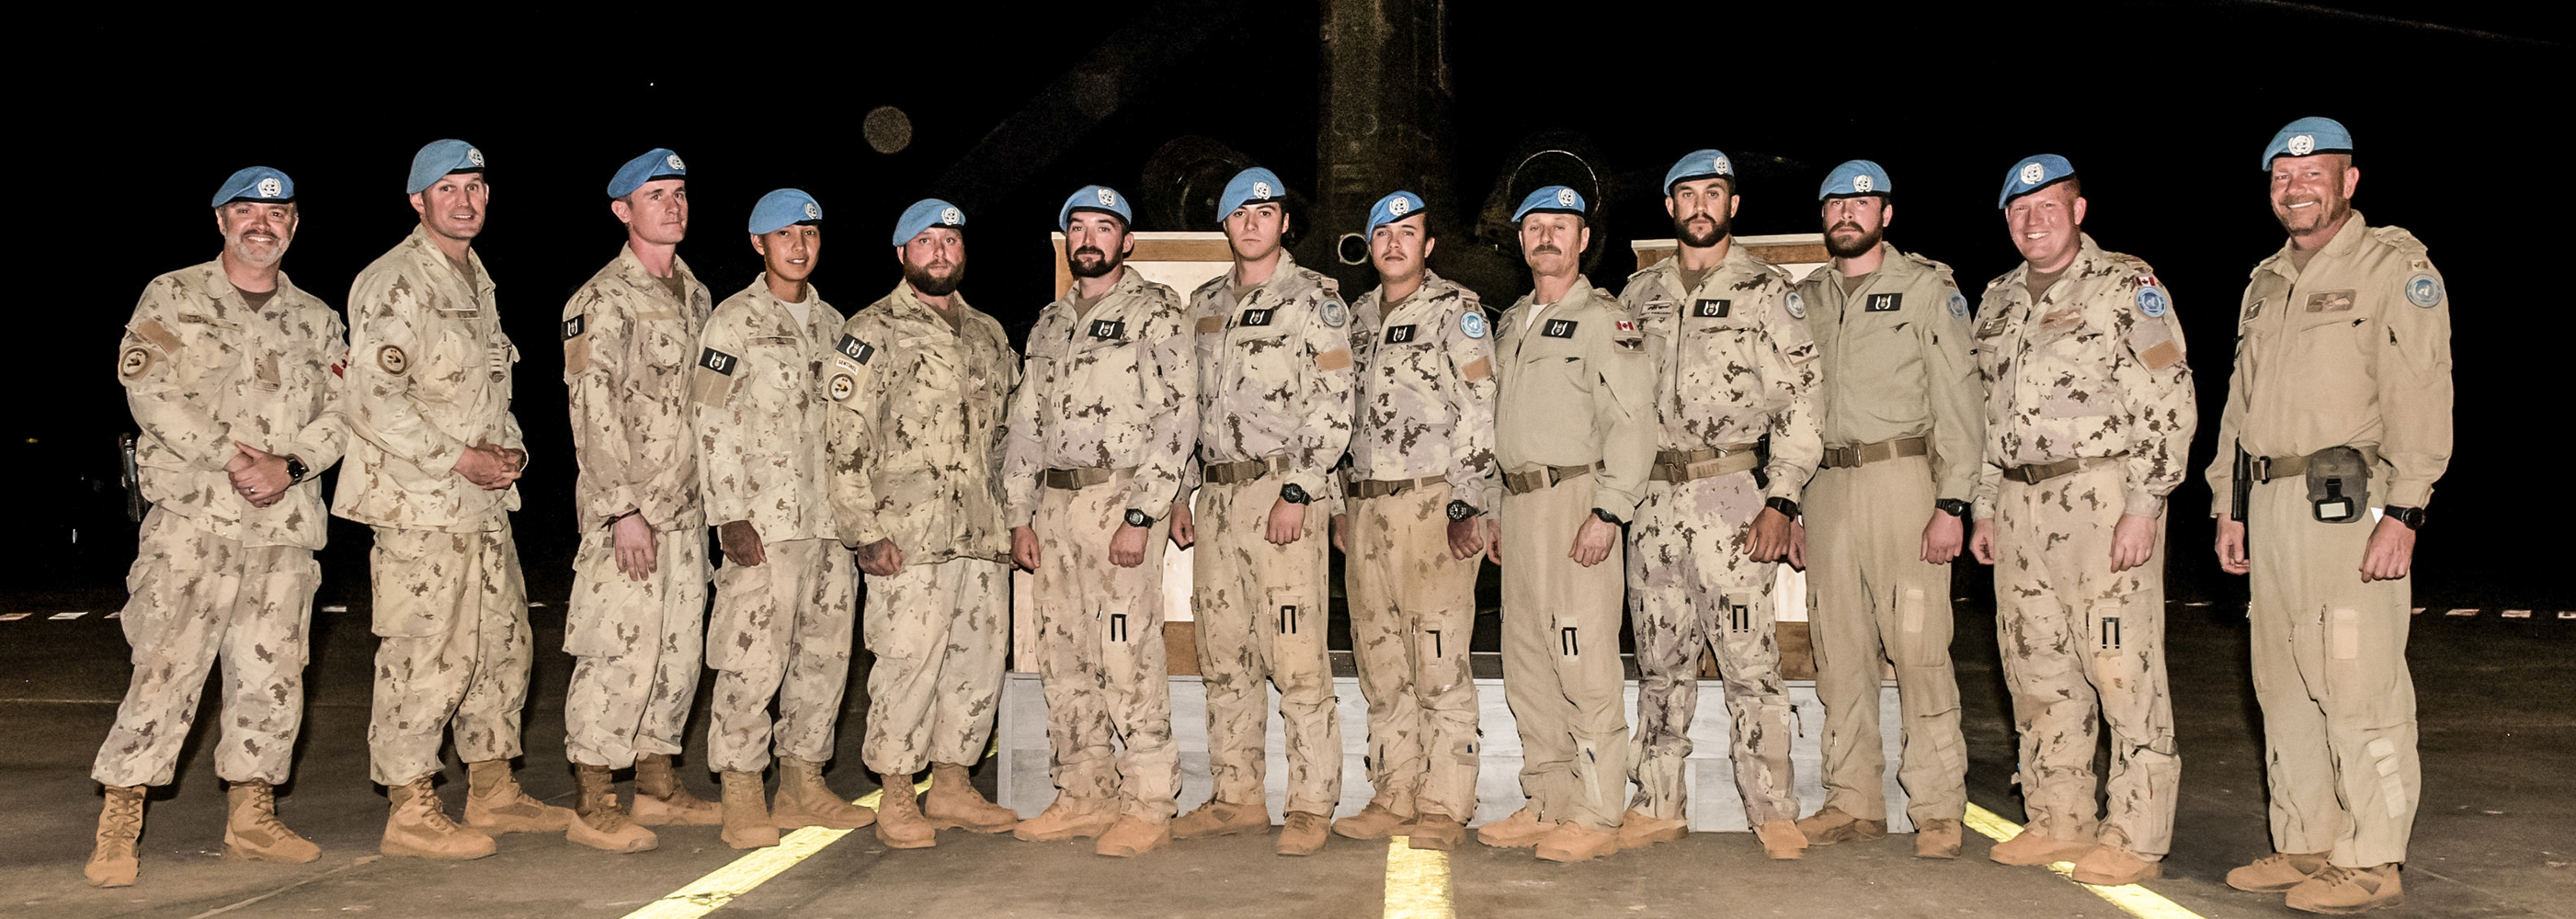 CH-146 Griffon and CH-147F Chinook helicopter door gunners serving on Operation Presence in Mali received their new interim tactical aviation door gunner badges on January 10, 2019. PHOTO: DND, TM01-2019-0001-18